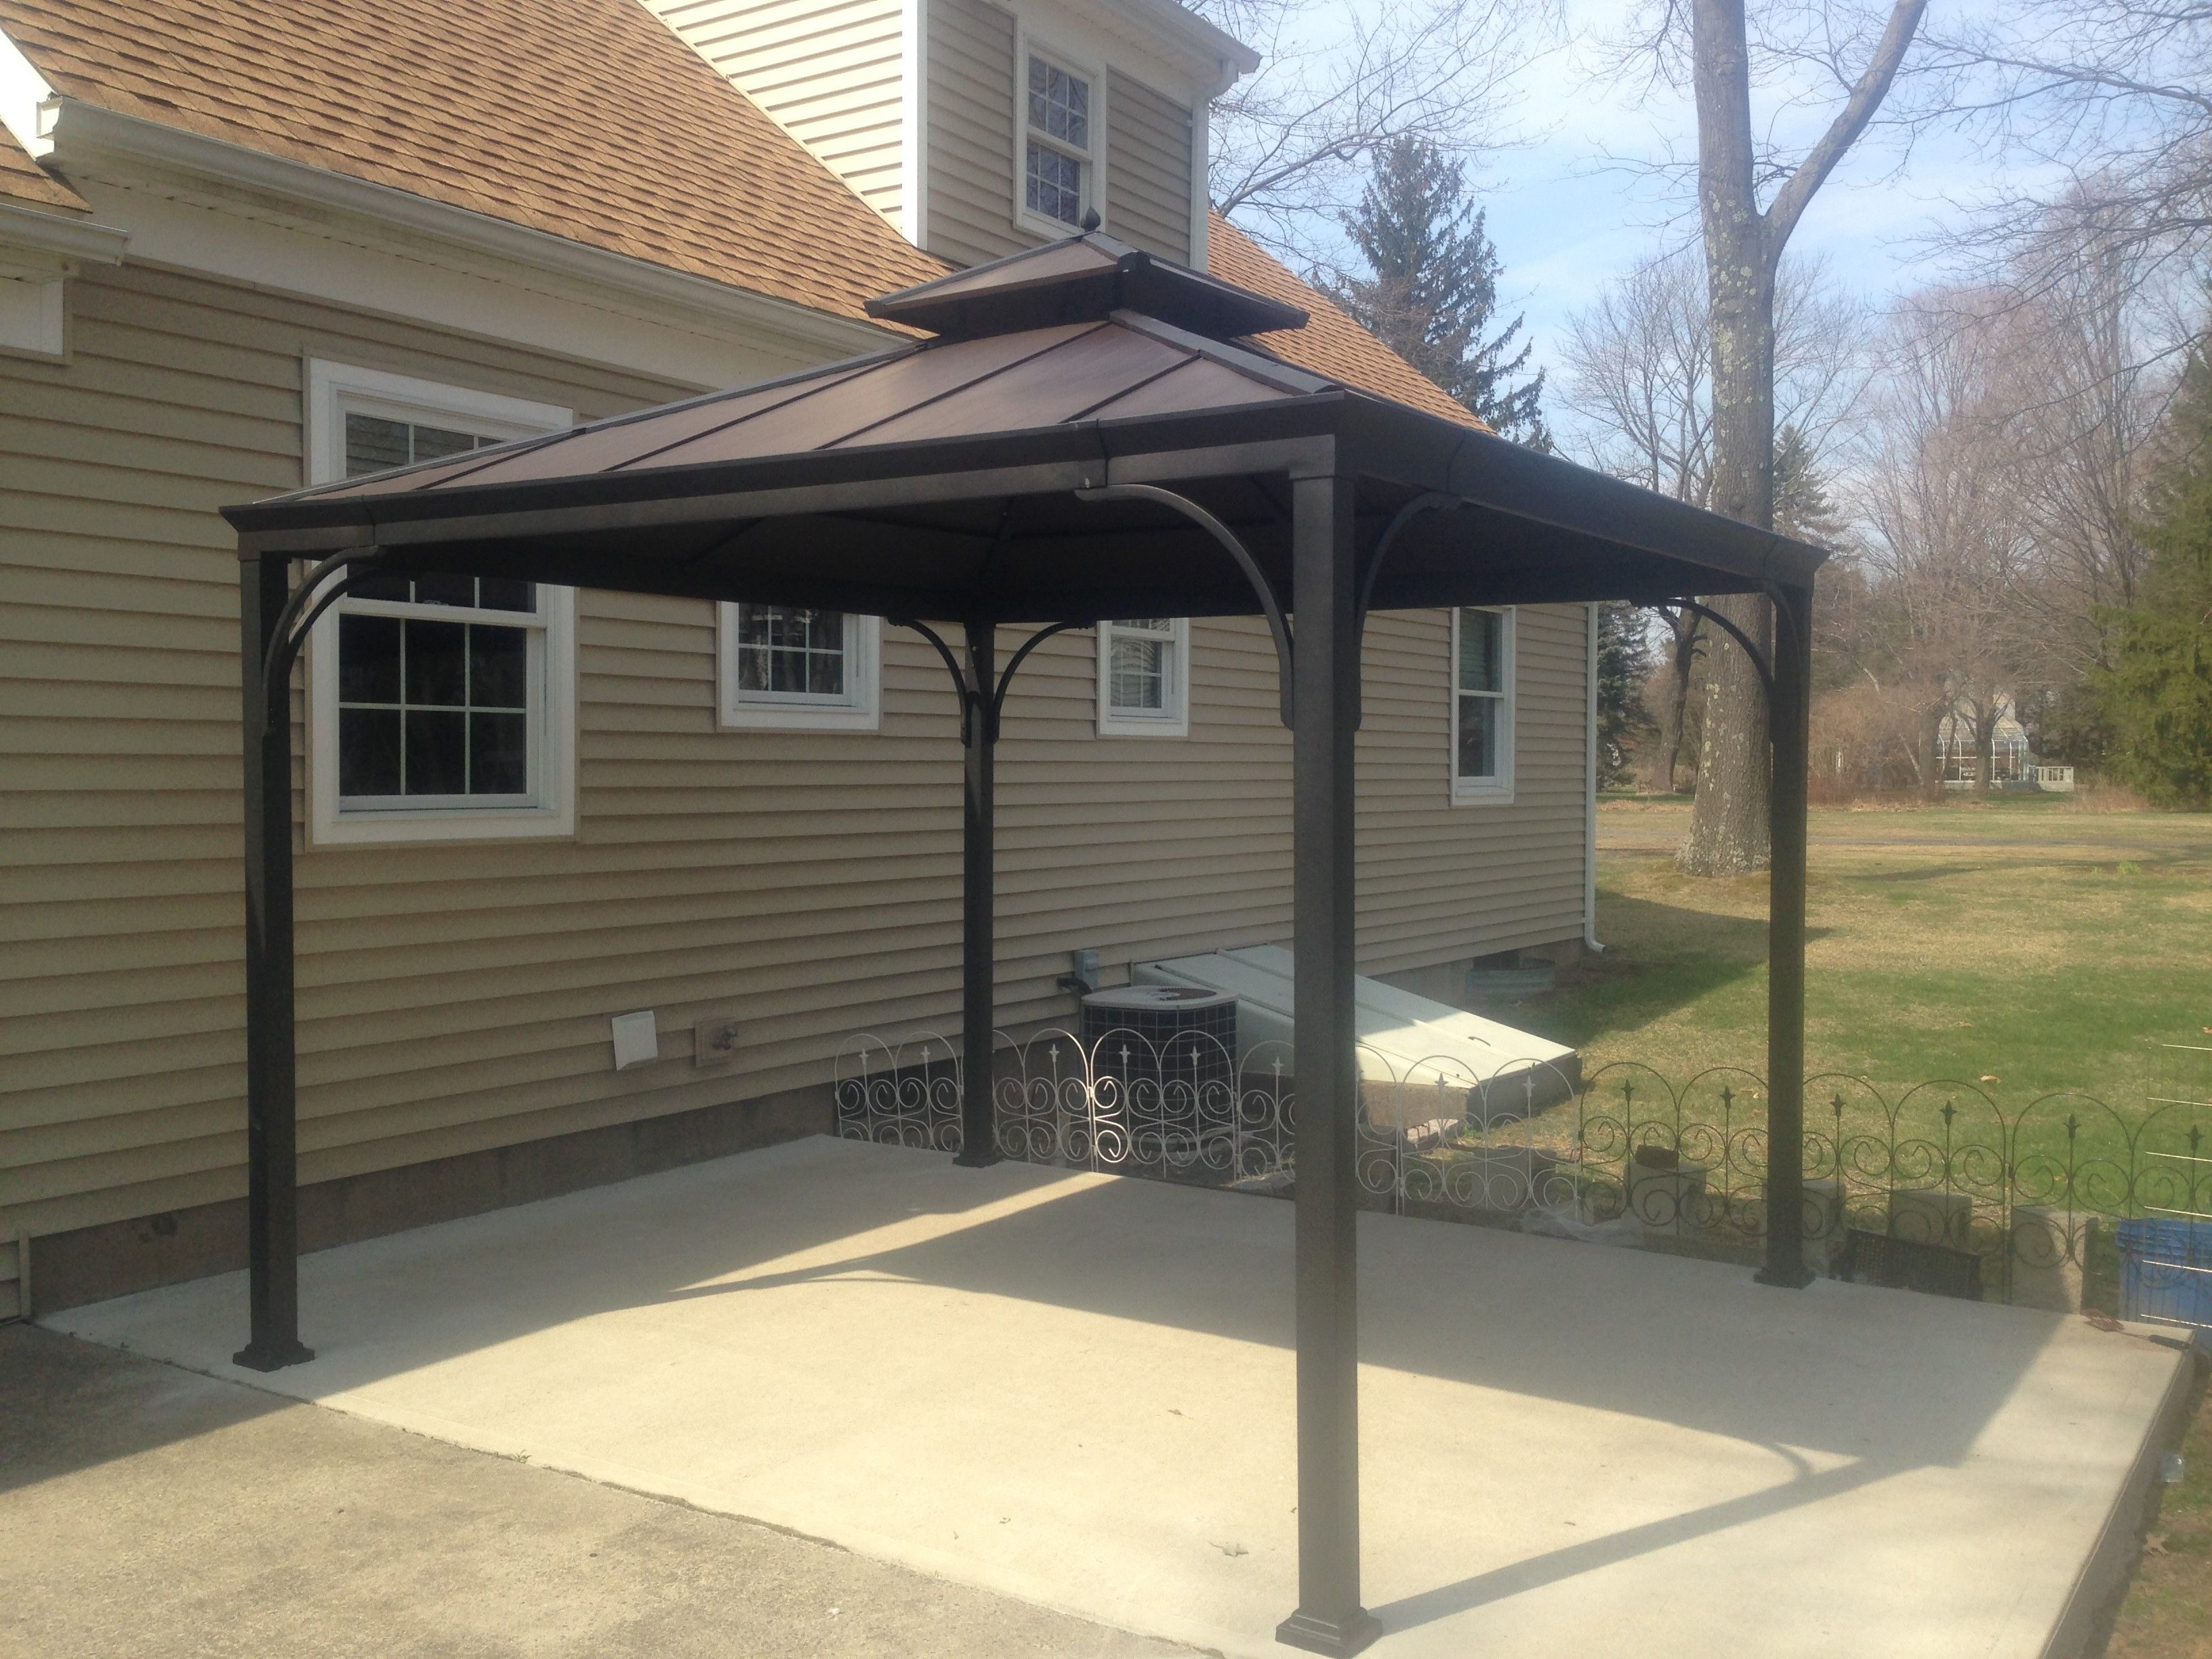 Harper 10 x 10 Metal Gazebo purchased at Homedepot assembled in Lake